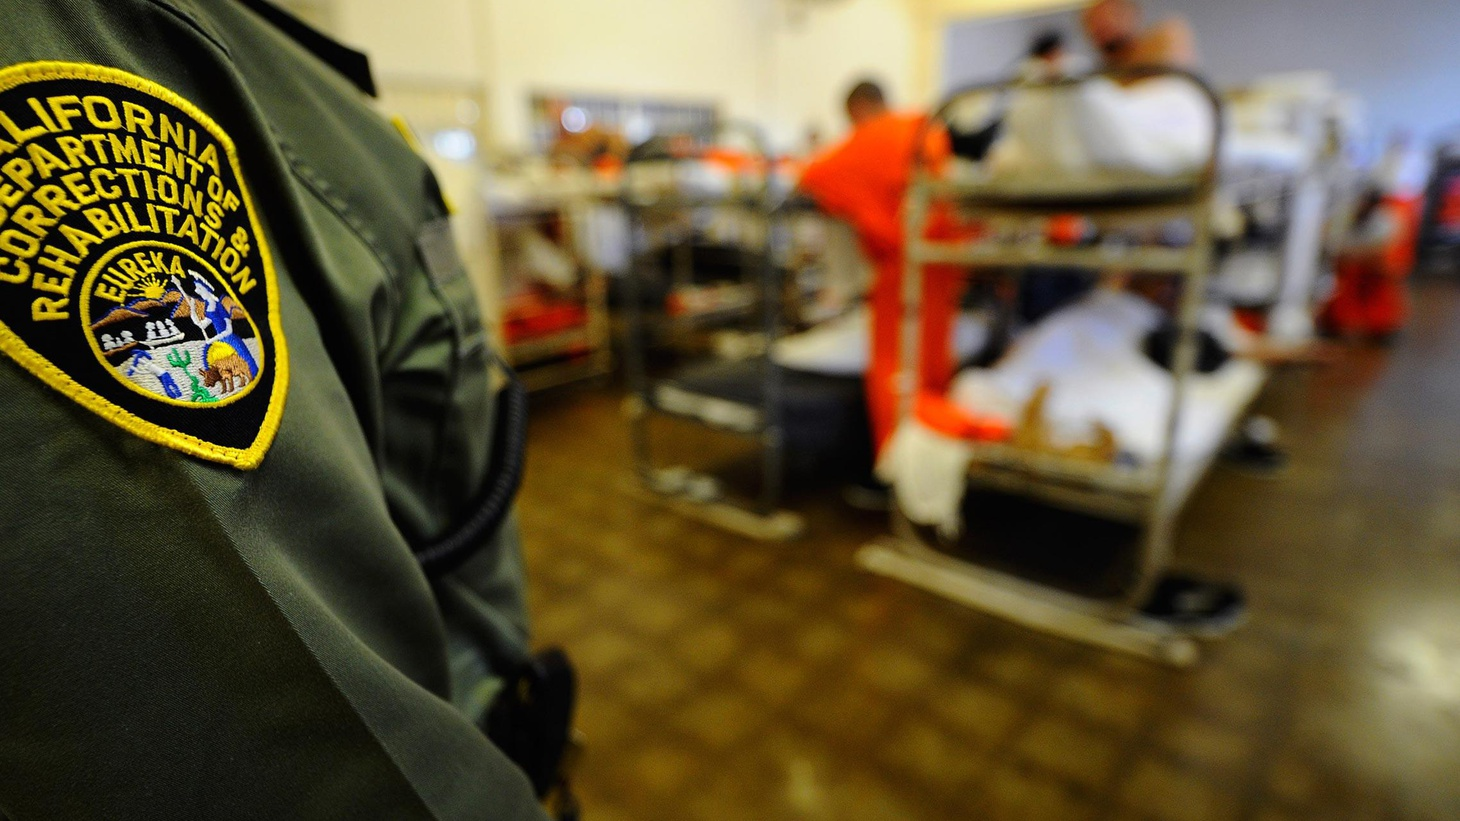 A scathing report finds top Sheriff's officials encouraging, excessive violence against inmates in LA County jails. Will the Sheriff implement reform recommendations?